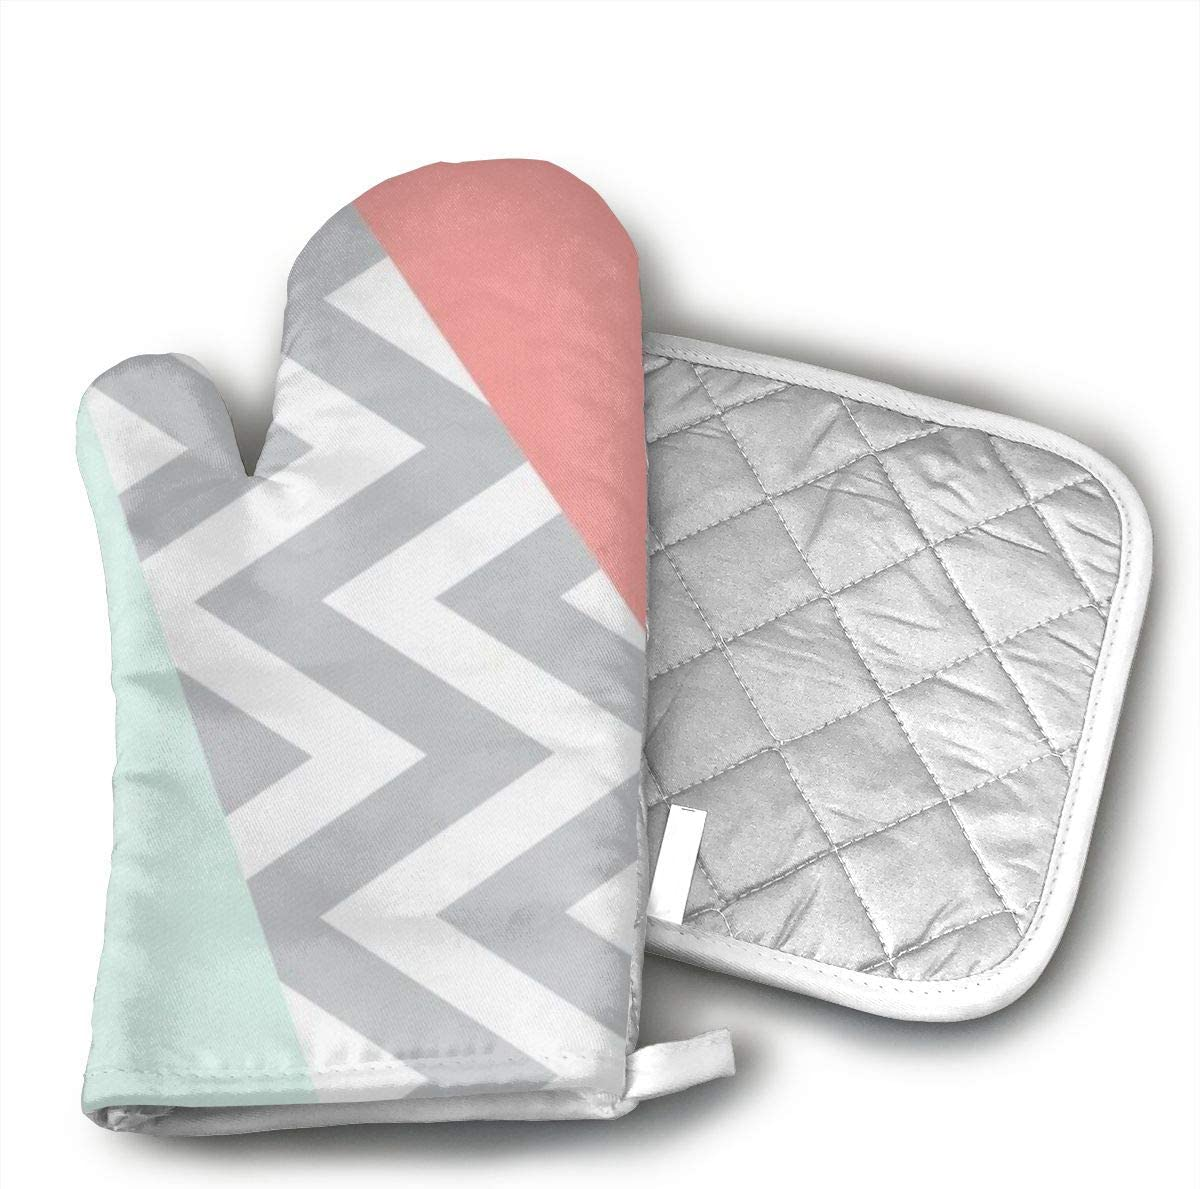 Sjiwqoj8 Original Mint & Coral Chevron Block Kitchen Oven Mitts,Oven Mitts and Pot Holders,Heat Resistant with Quilted Cotton Lining,Cooking,Baking,Grilling,Barbecue